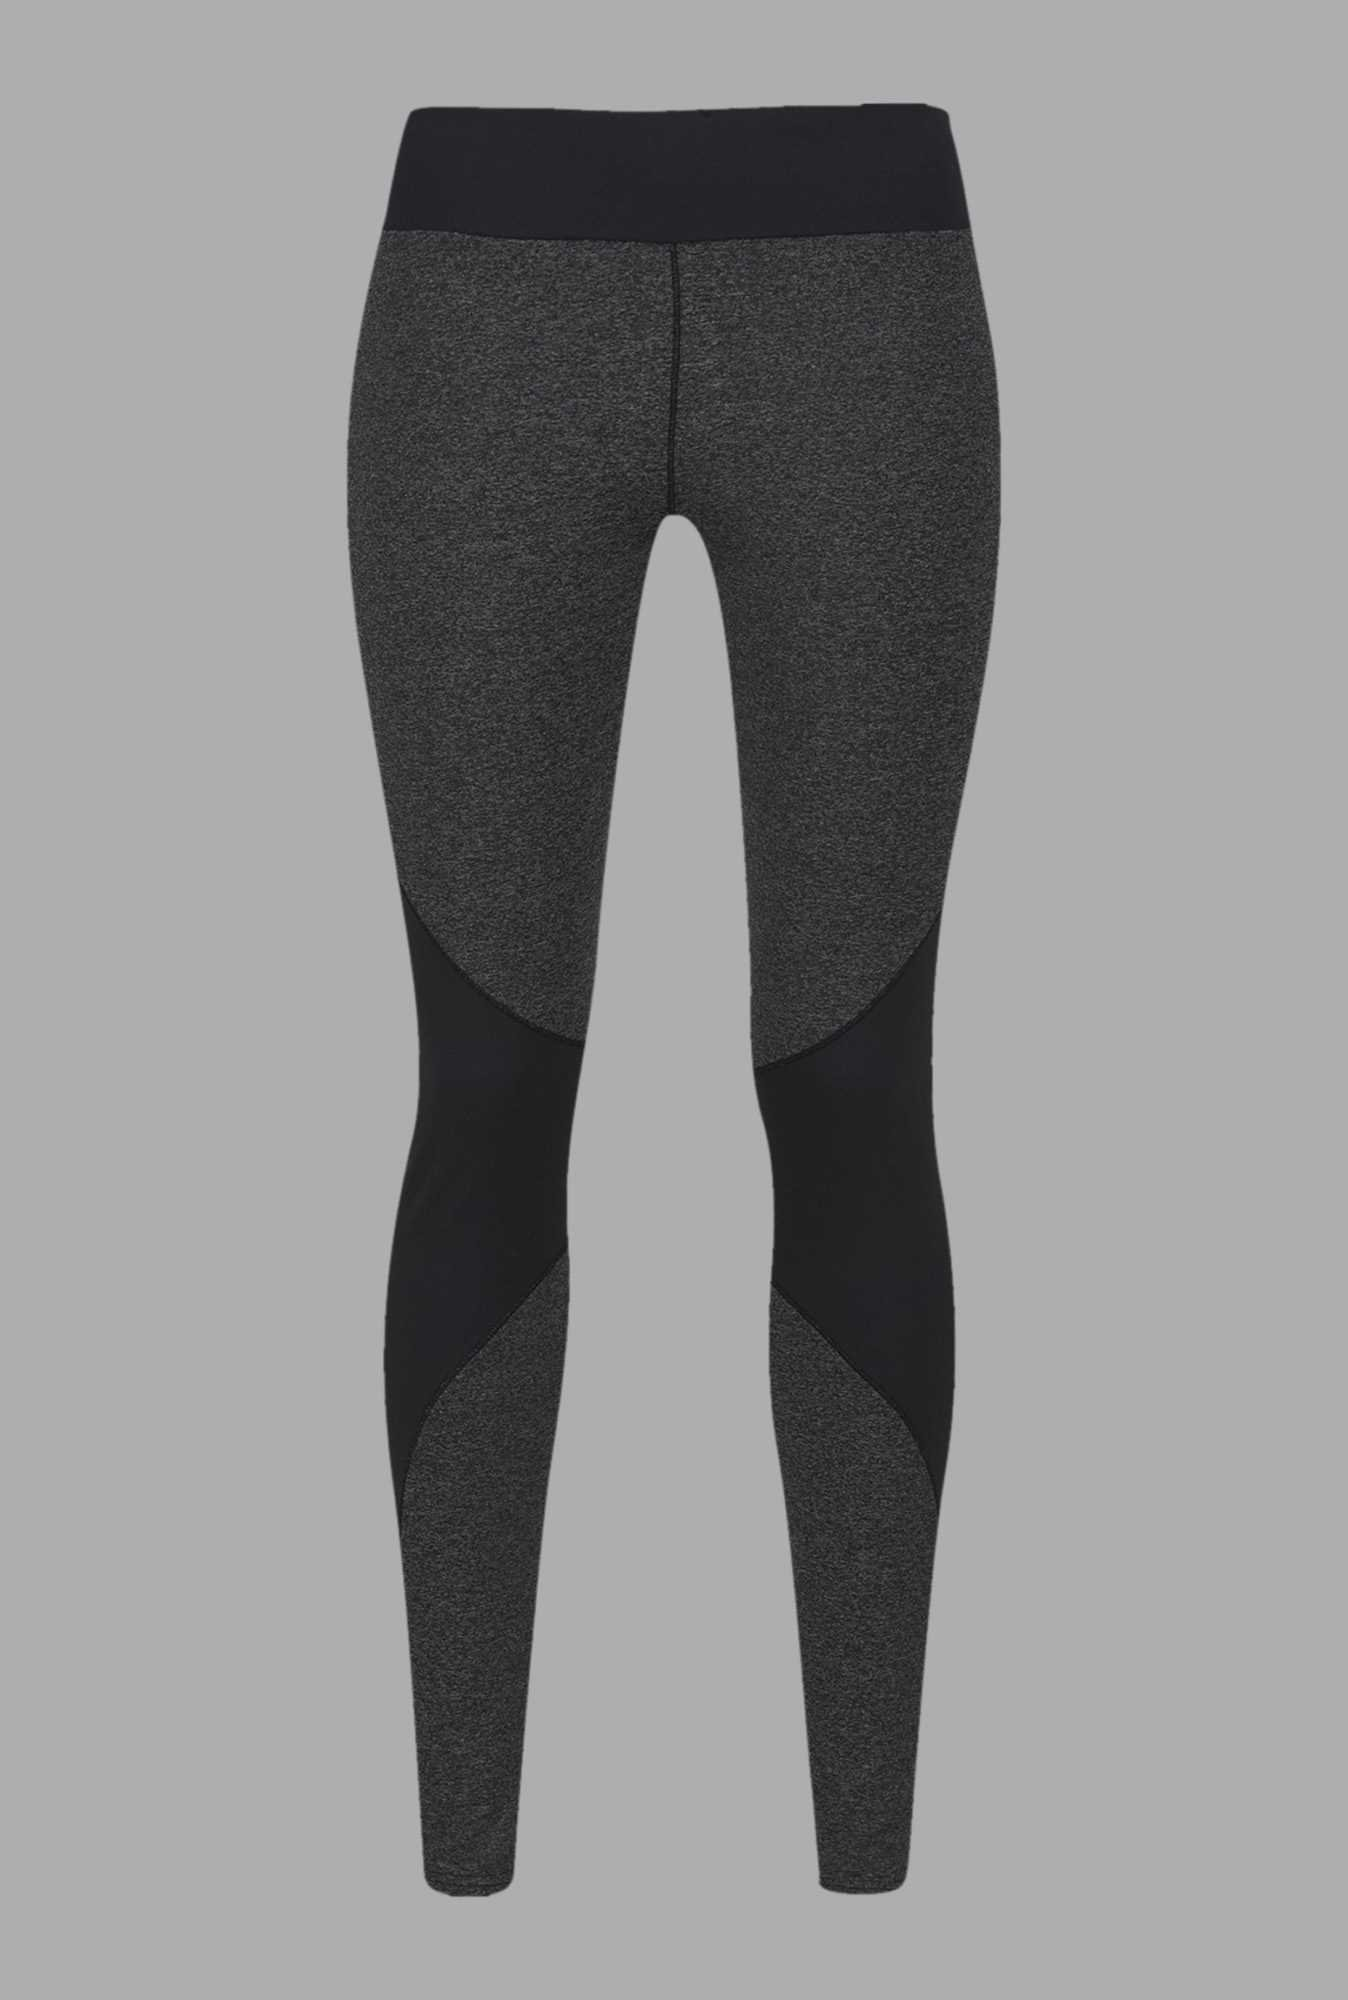 Doone Grey Solid Training Pants